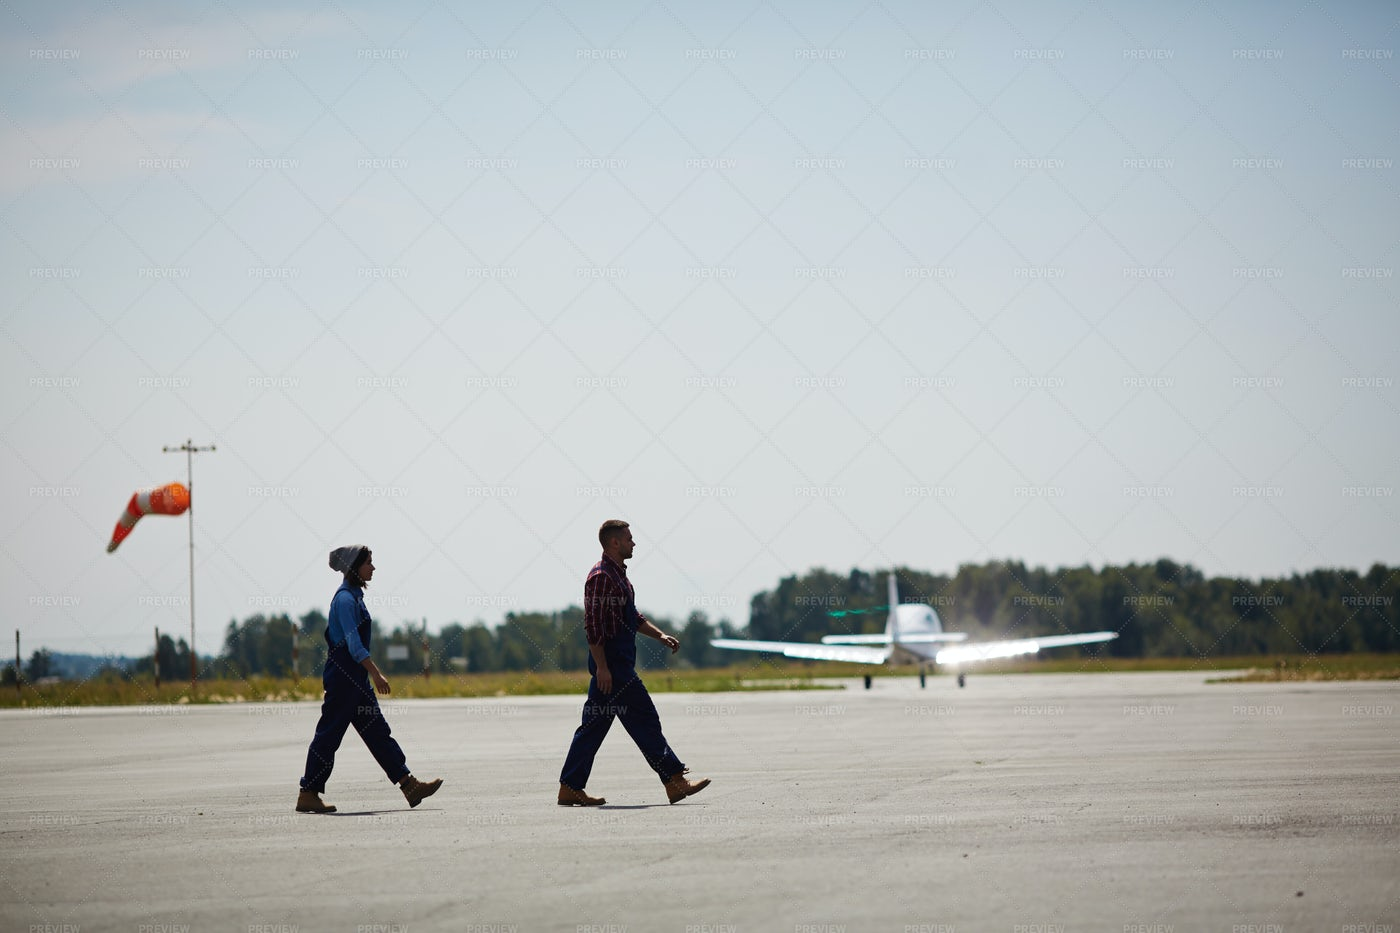 Airport Workers On Runway Field: Stock Photos